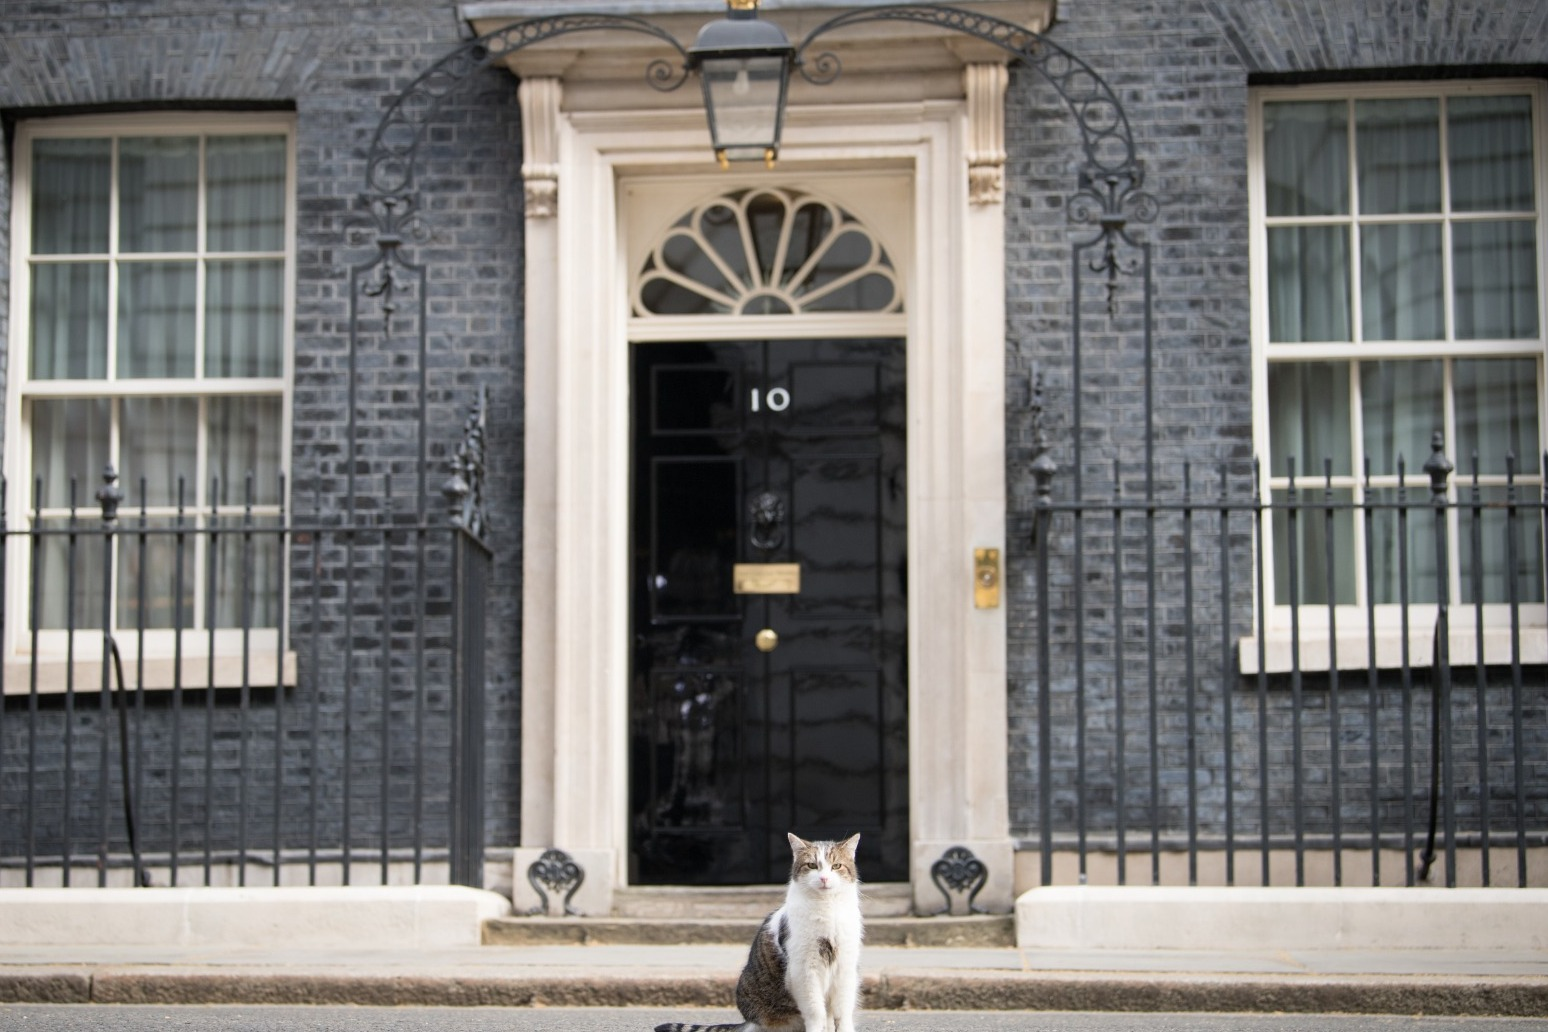 The Electoral Commission has announced it will investigate the refurbishment of Boris Johnsons Downing Street flat thumbnail